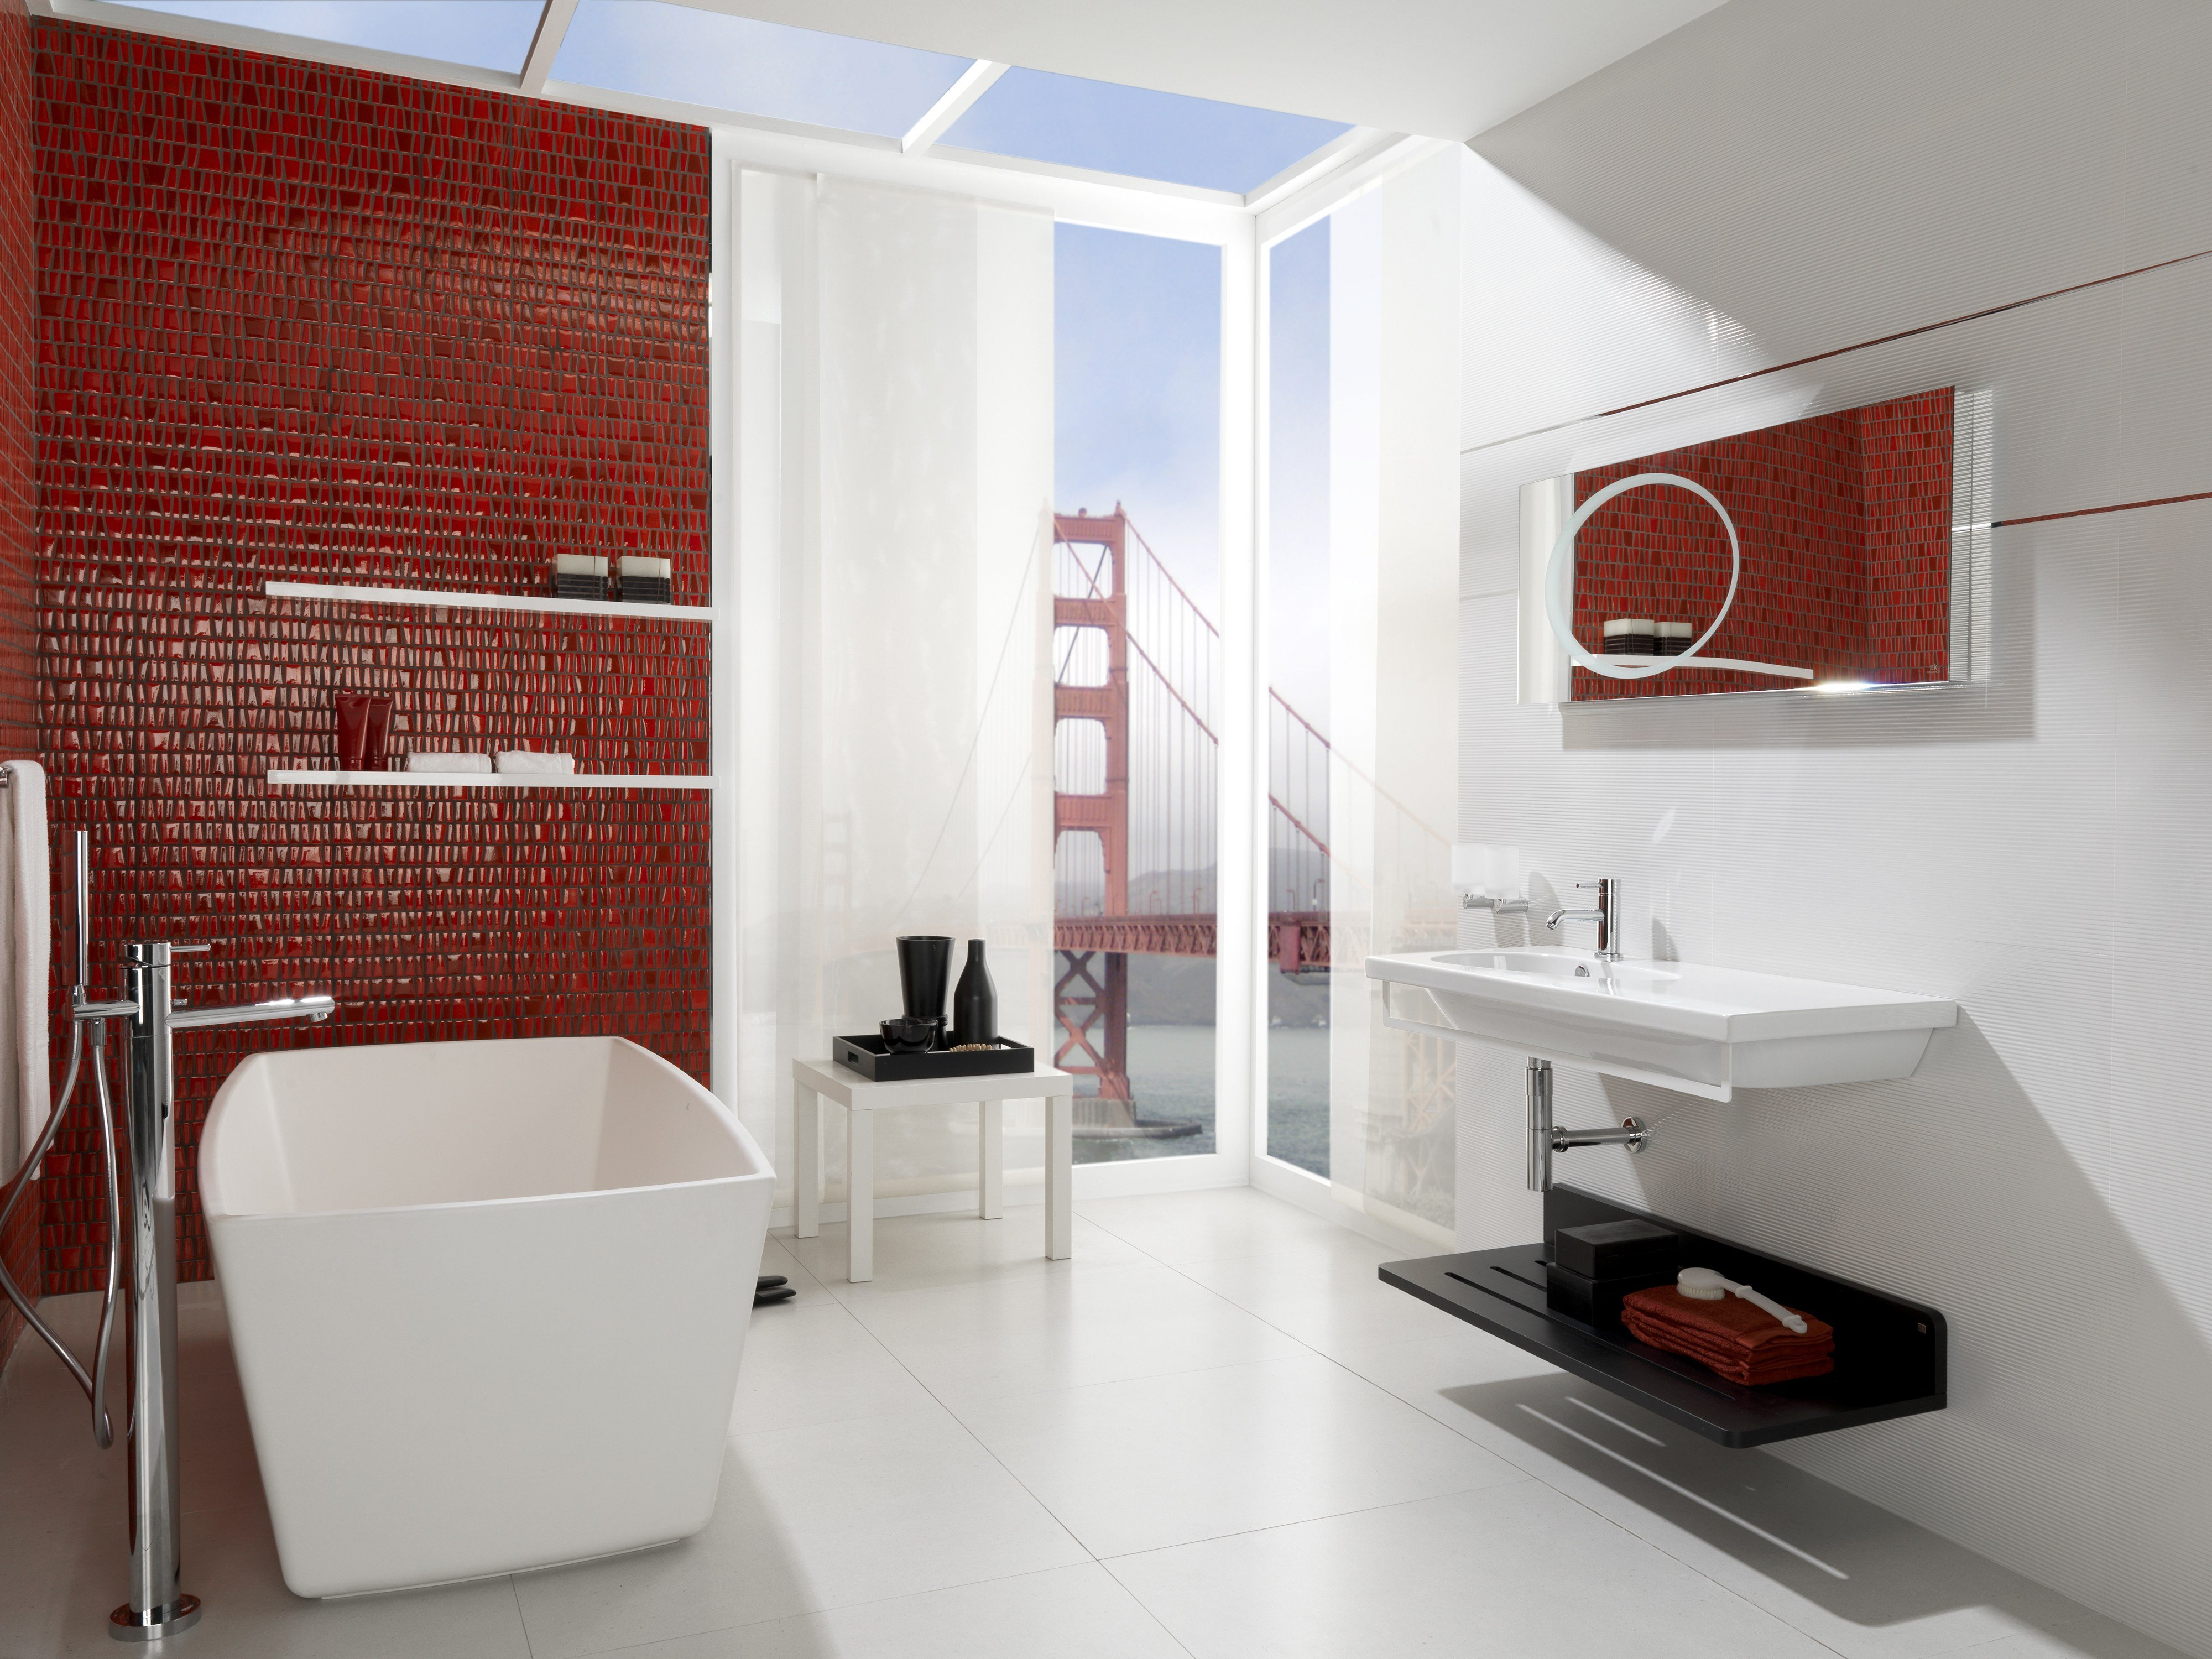 Red and Brown Bathroom Decor Awesome 99 Excelent Red and Brown Bathroom Accessories Image Ideas